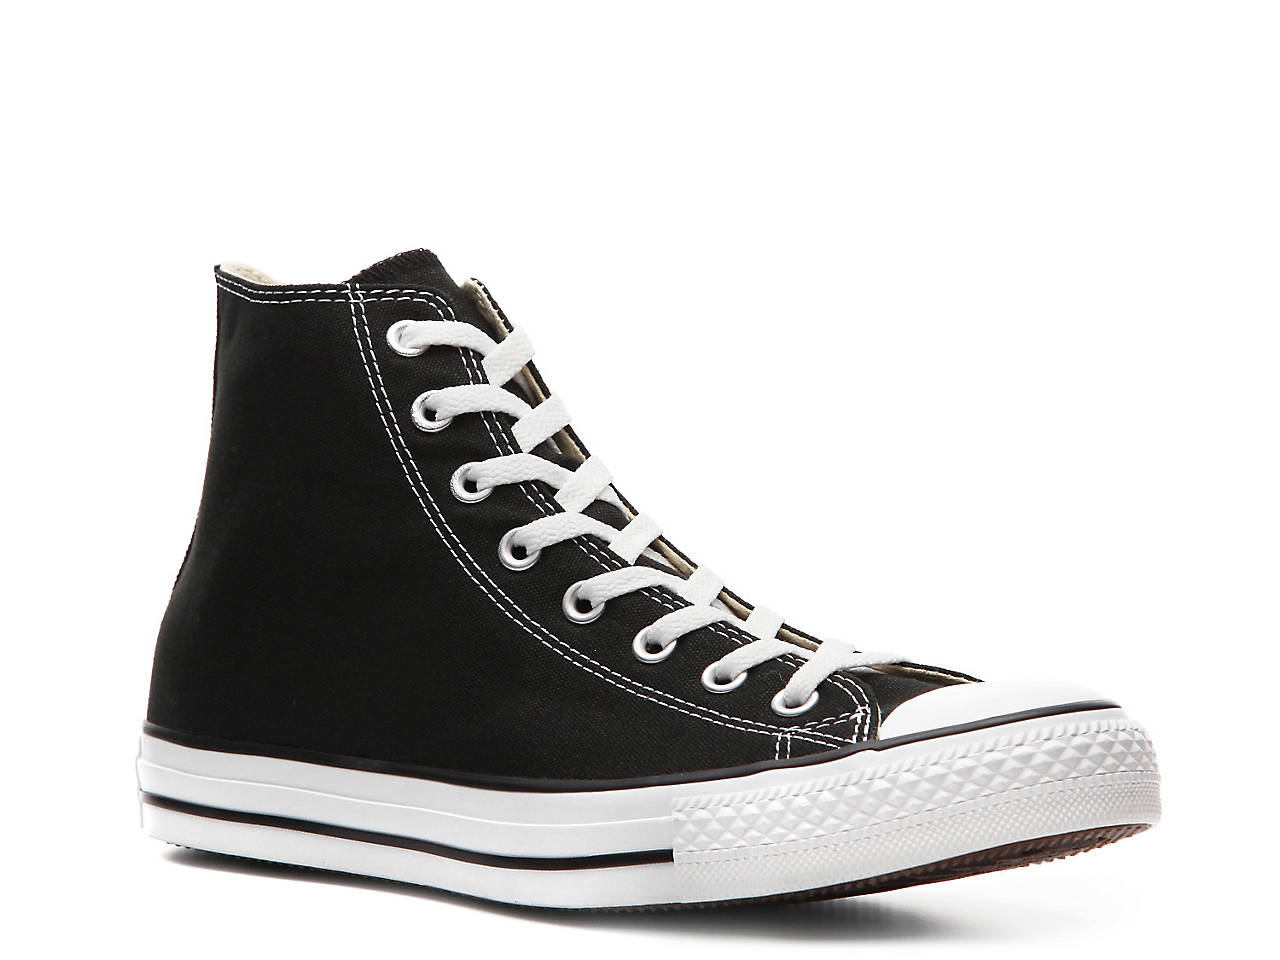 Converse Chuck Taylor All Star High-Top Sneaker - Men s Men s Shoes ... e2347b706